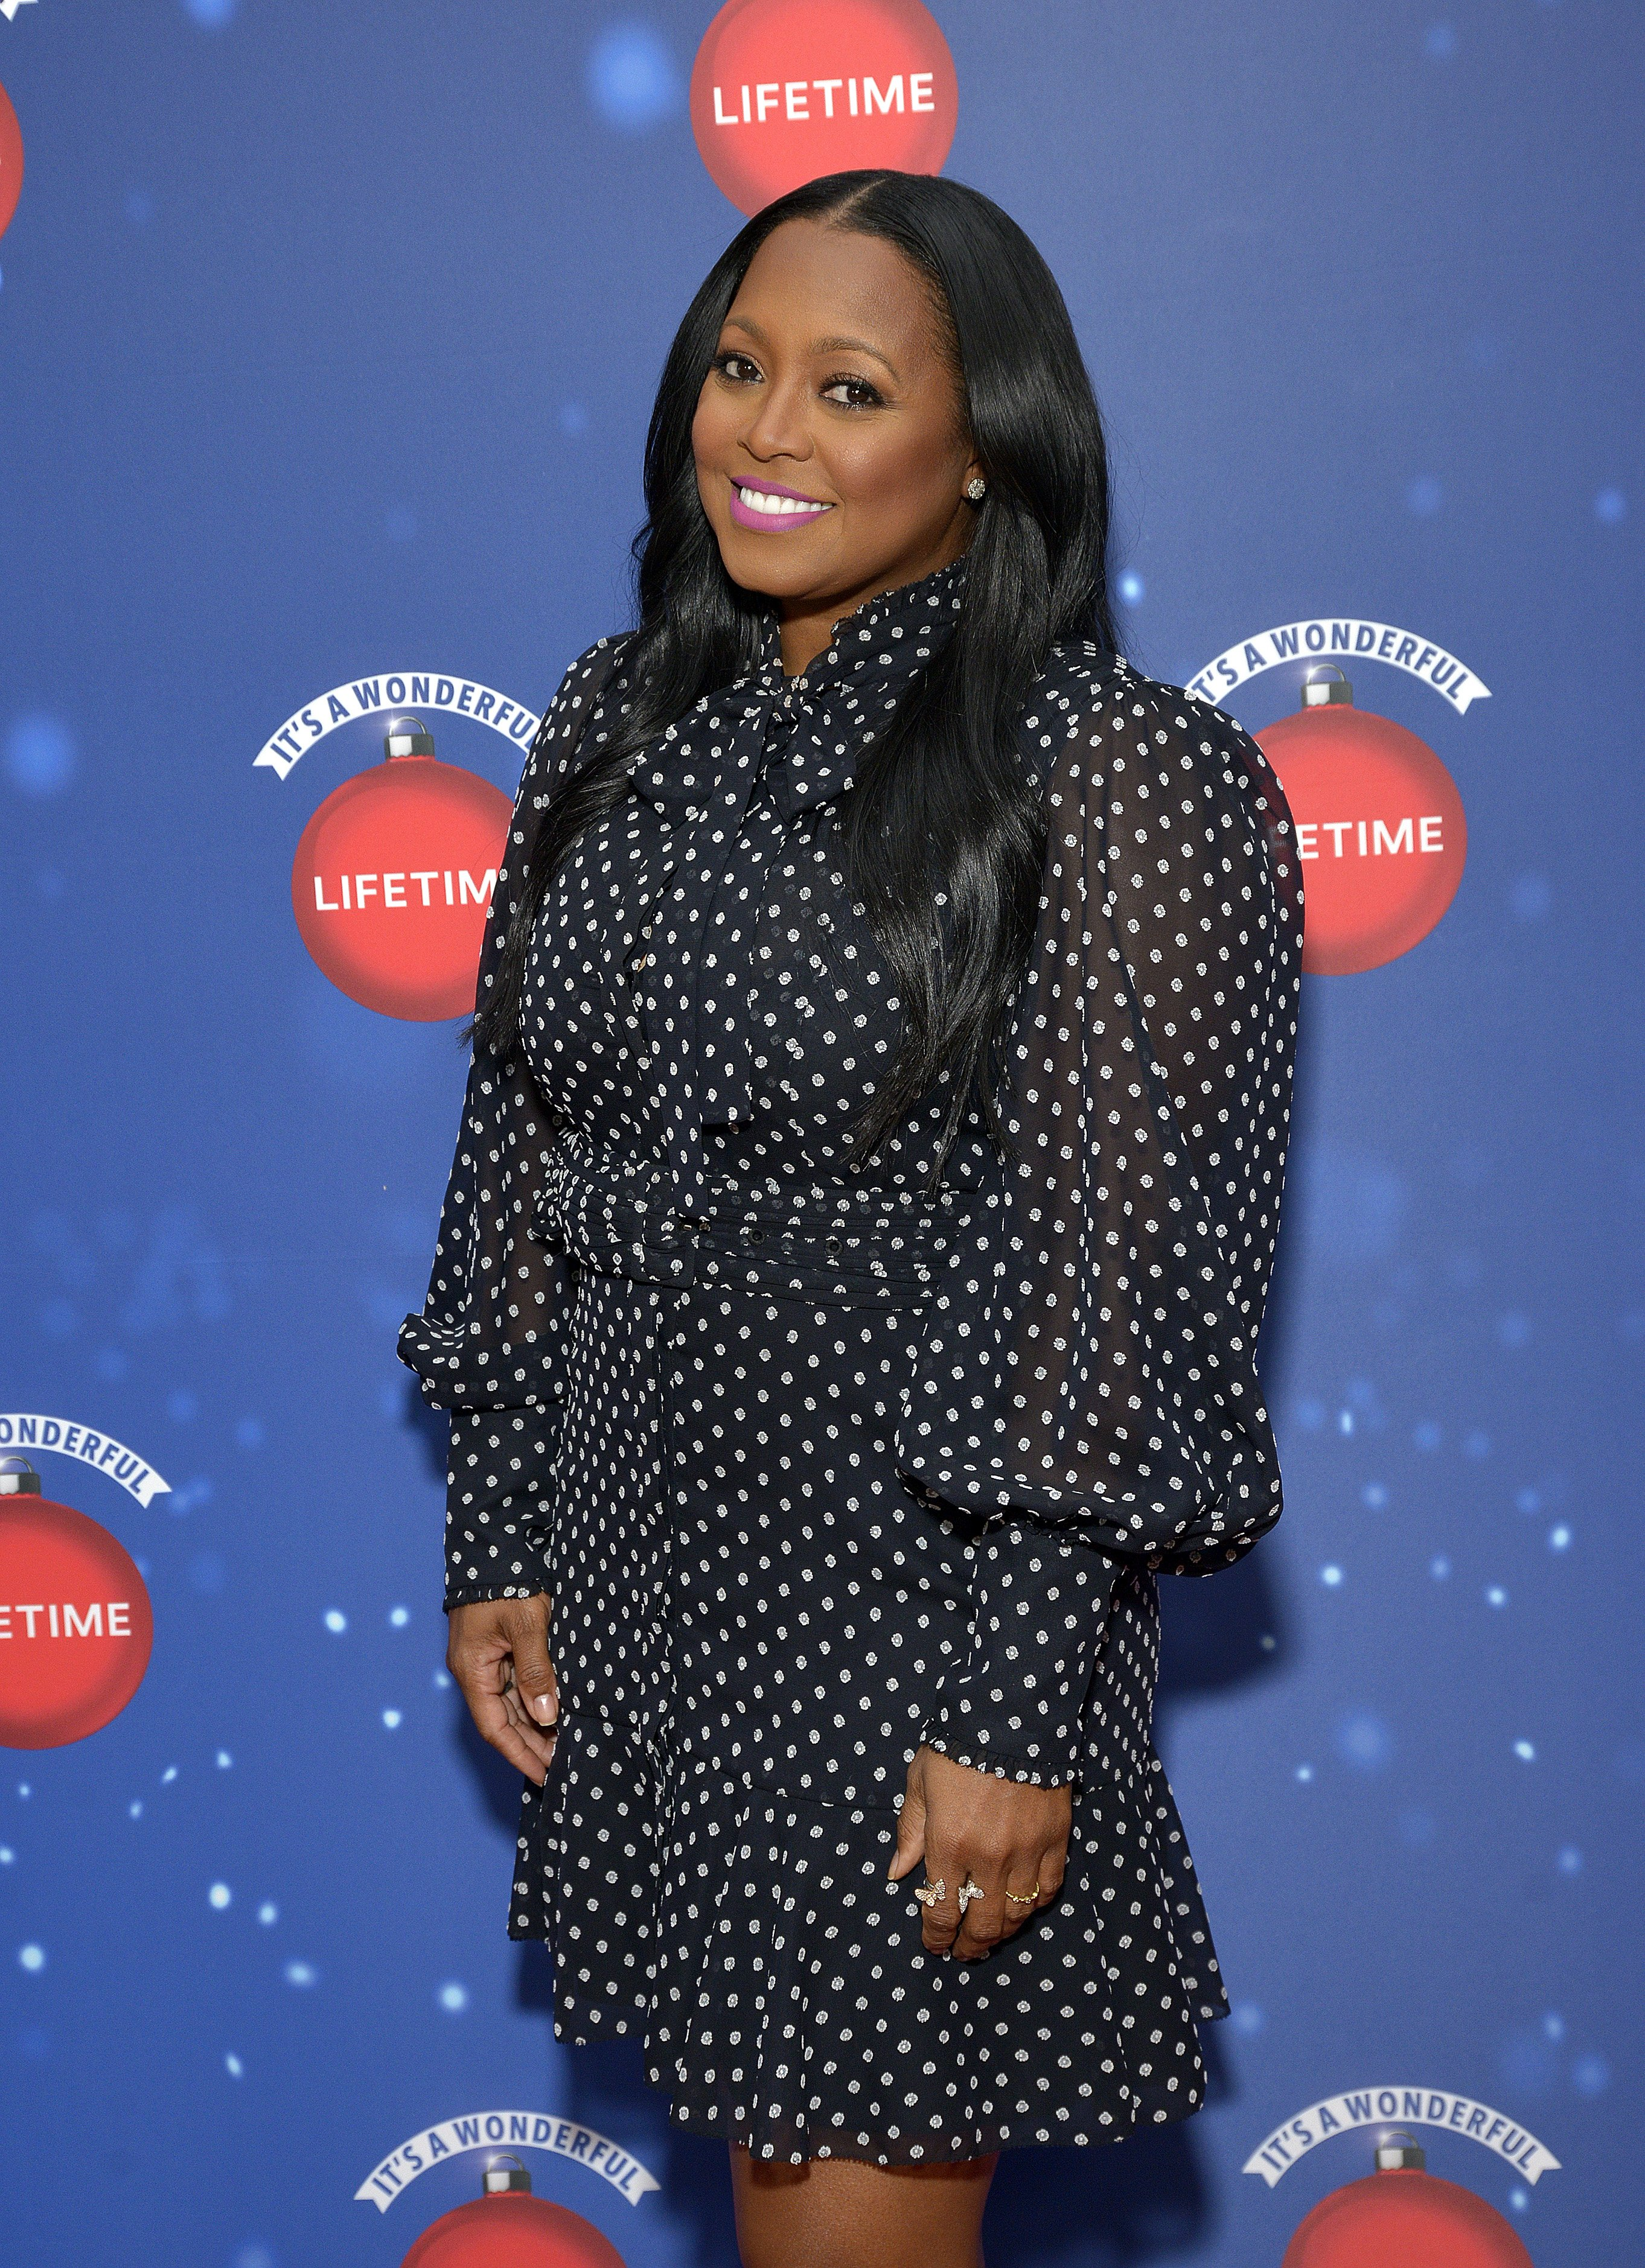 """Keshia Knight Pulliam at """"Say Santa! with It's A Wonderful Lifetime"""" photo experience in 2019   Source: Getty Images"""